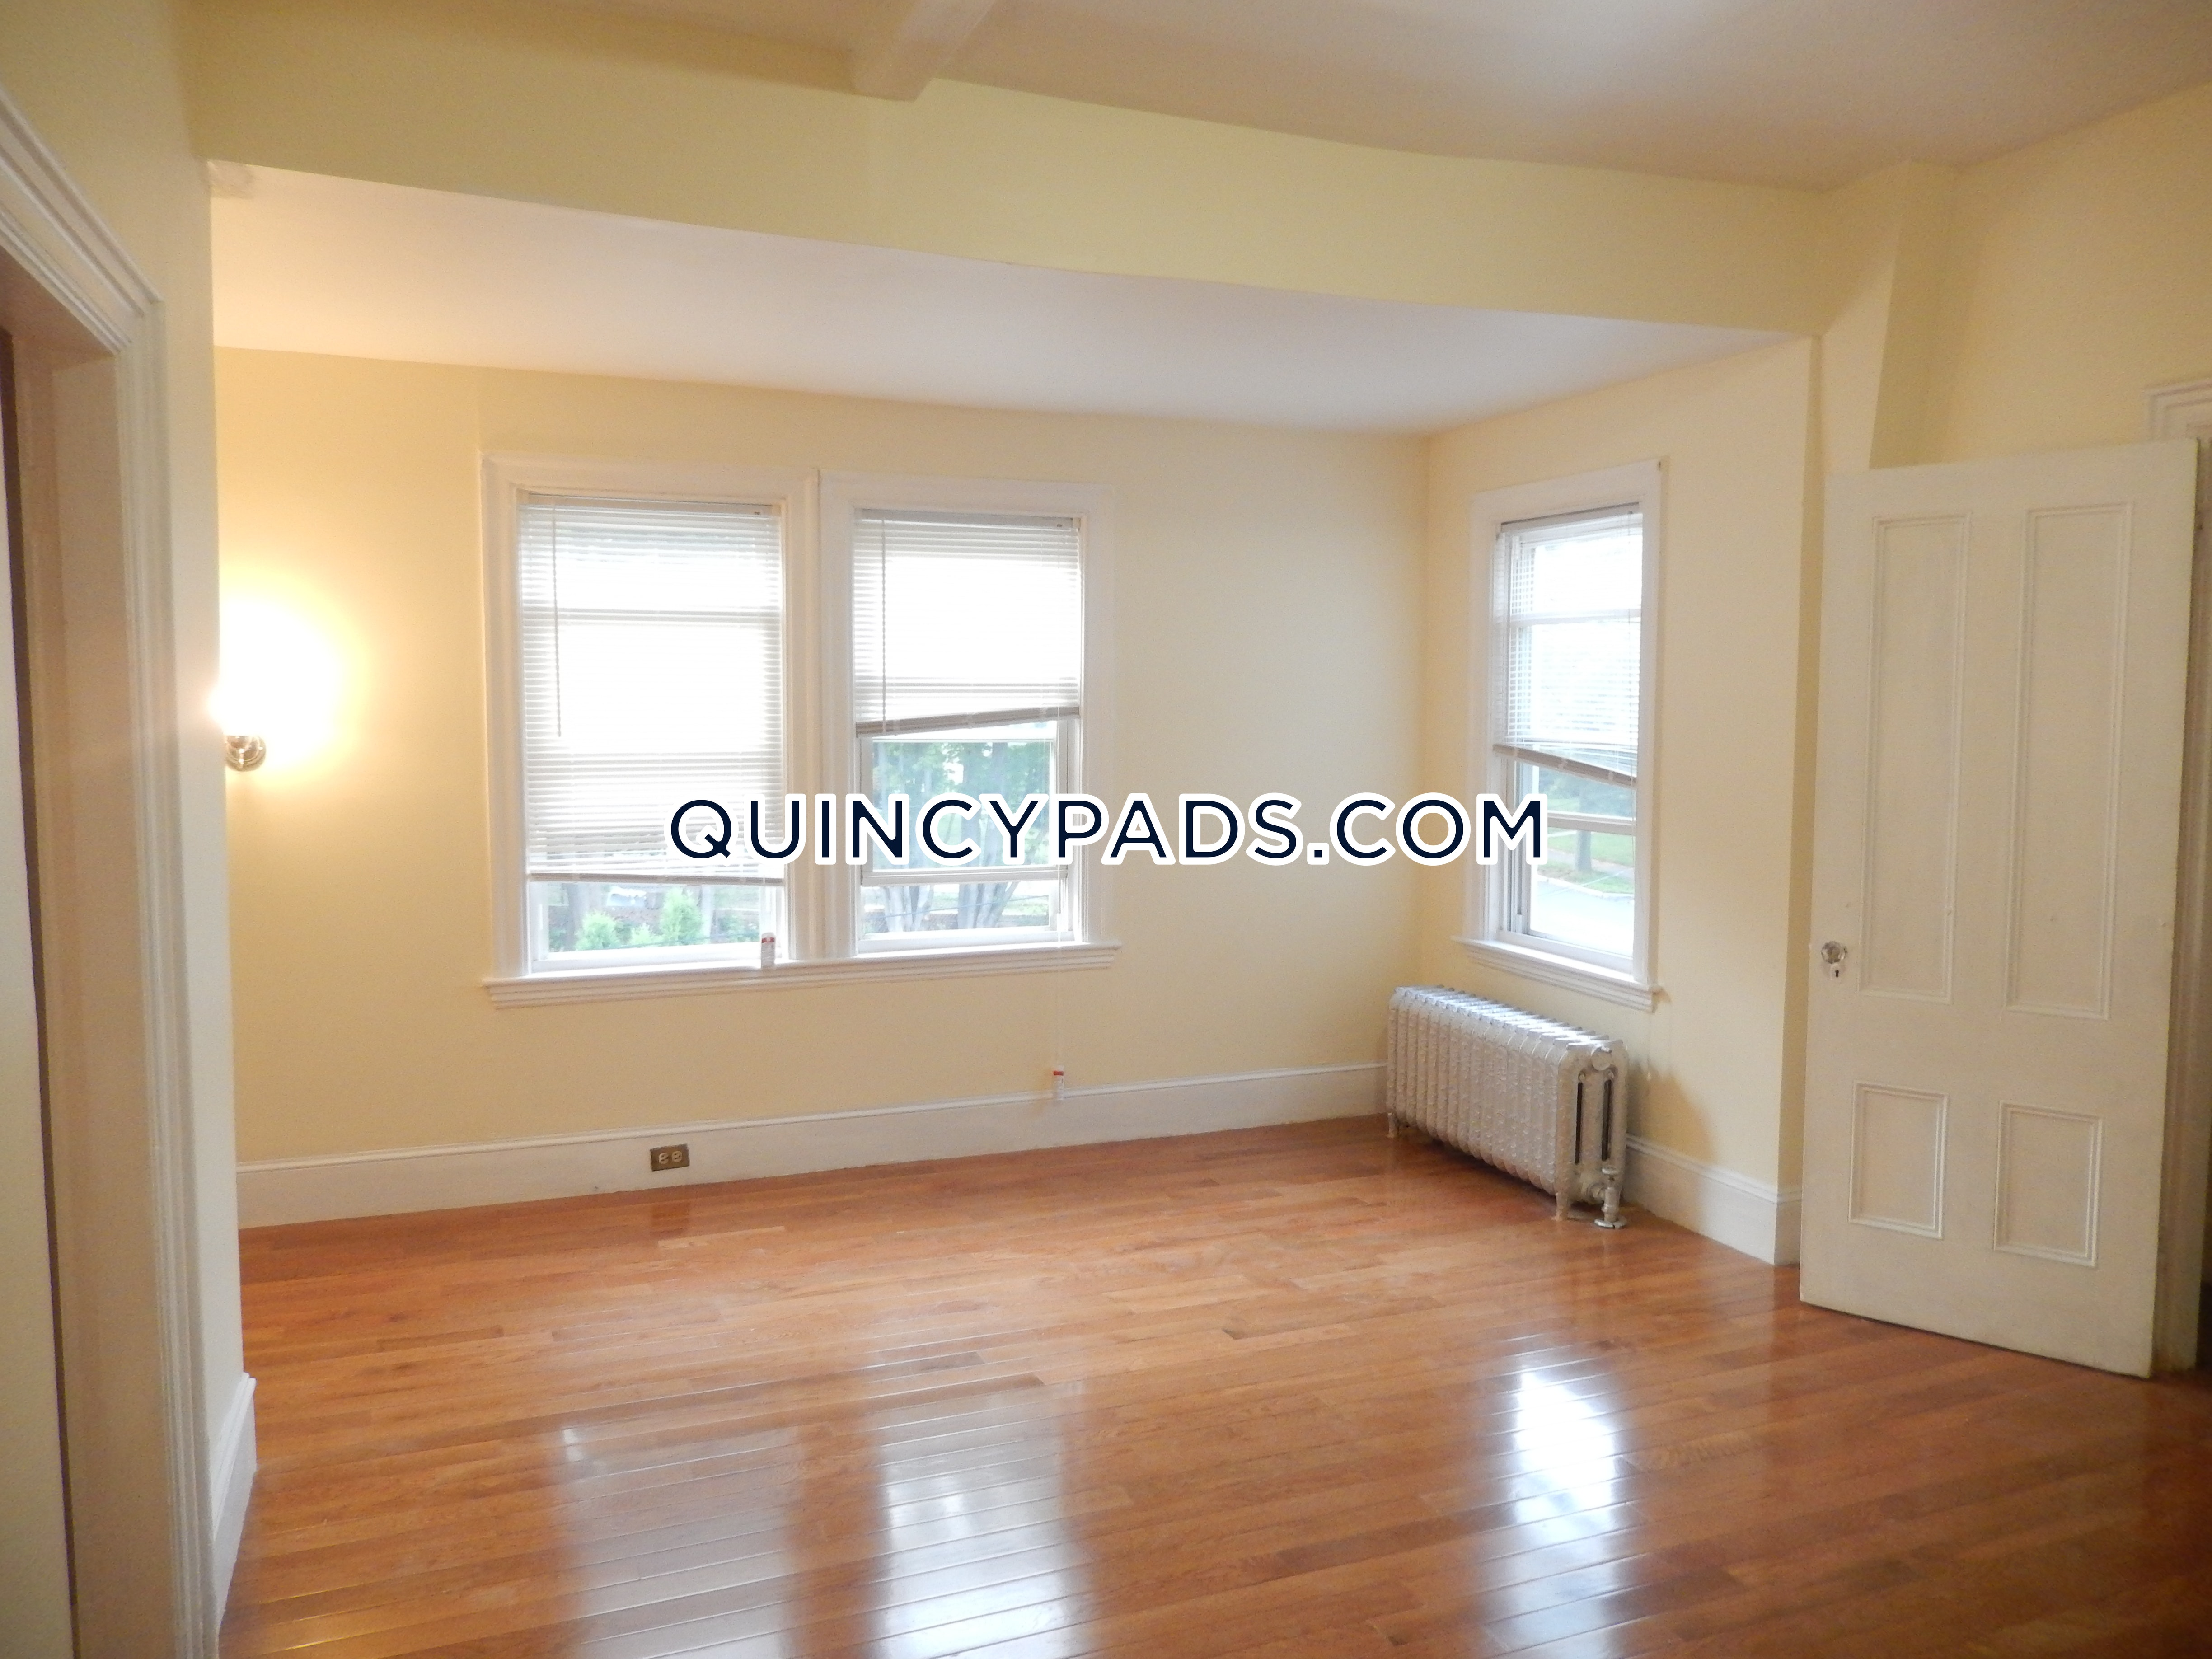 2 Beds 1 Bath - Quincy - Wollaston $1,750 - Quincy - Wollaston $1,750